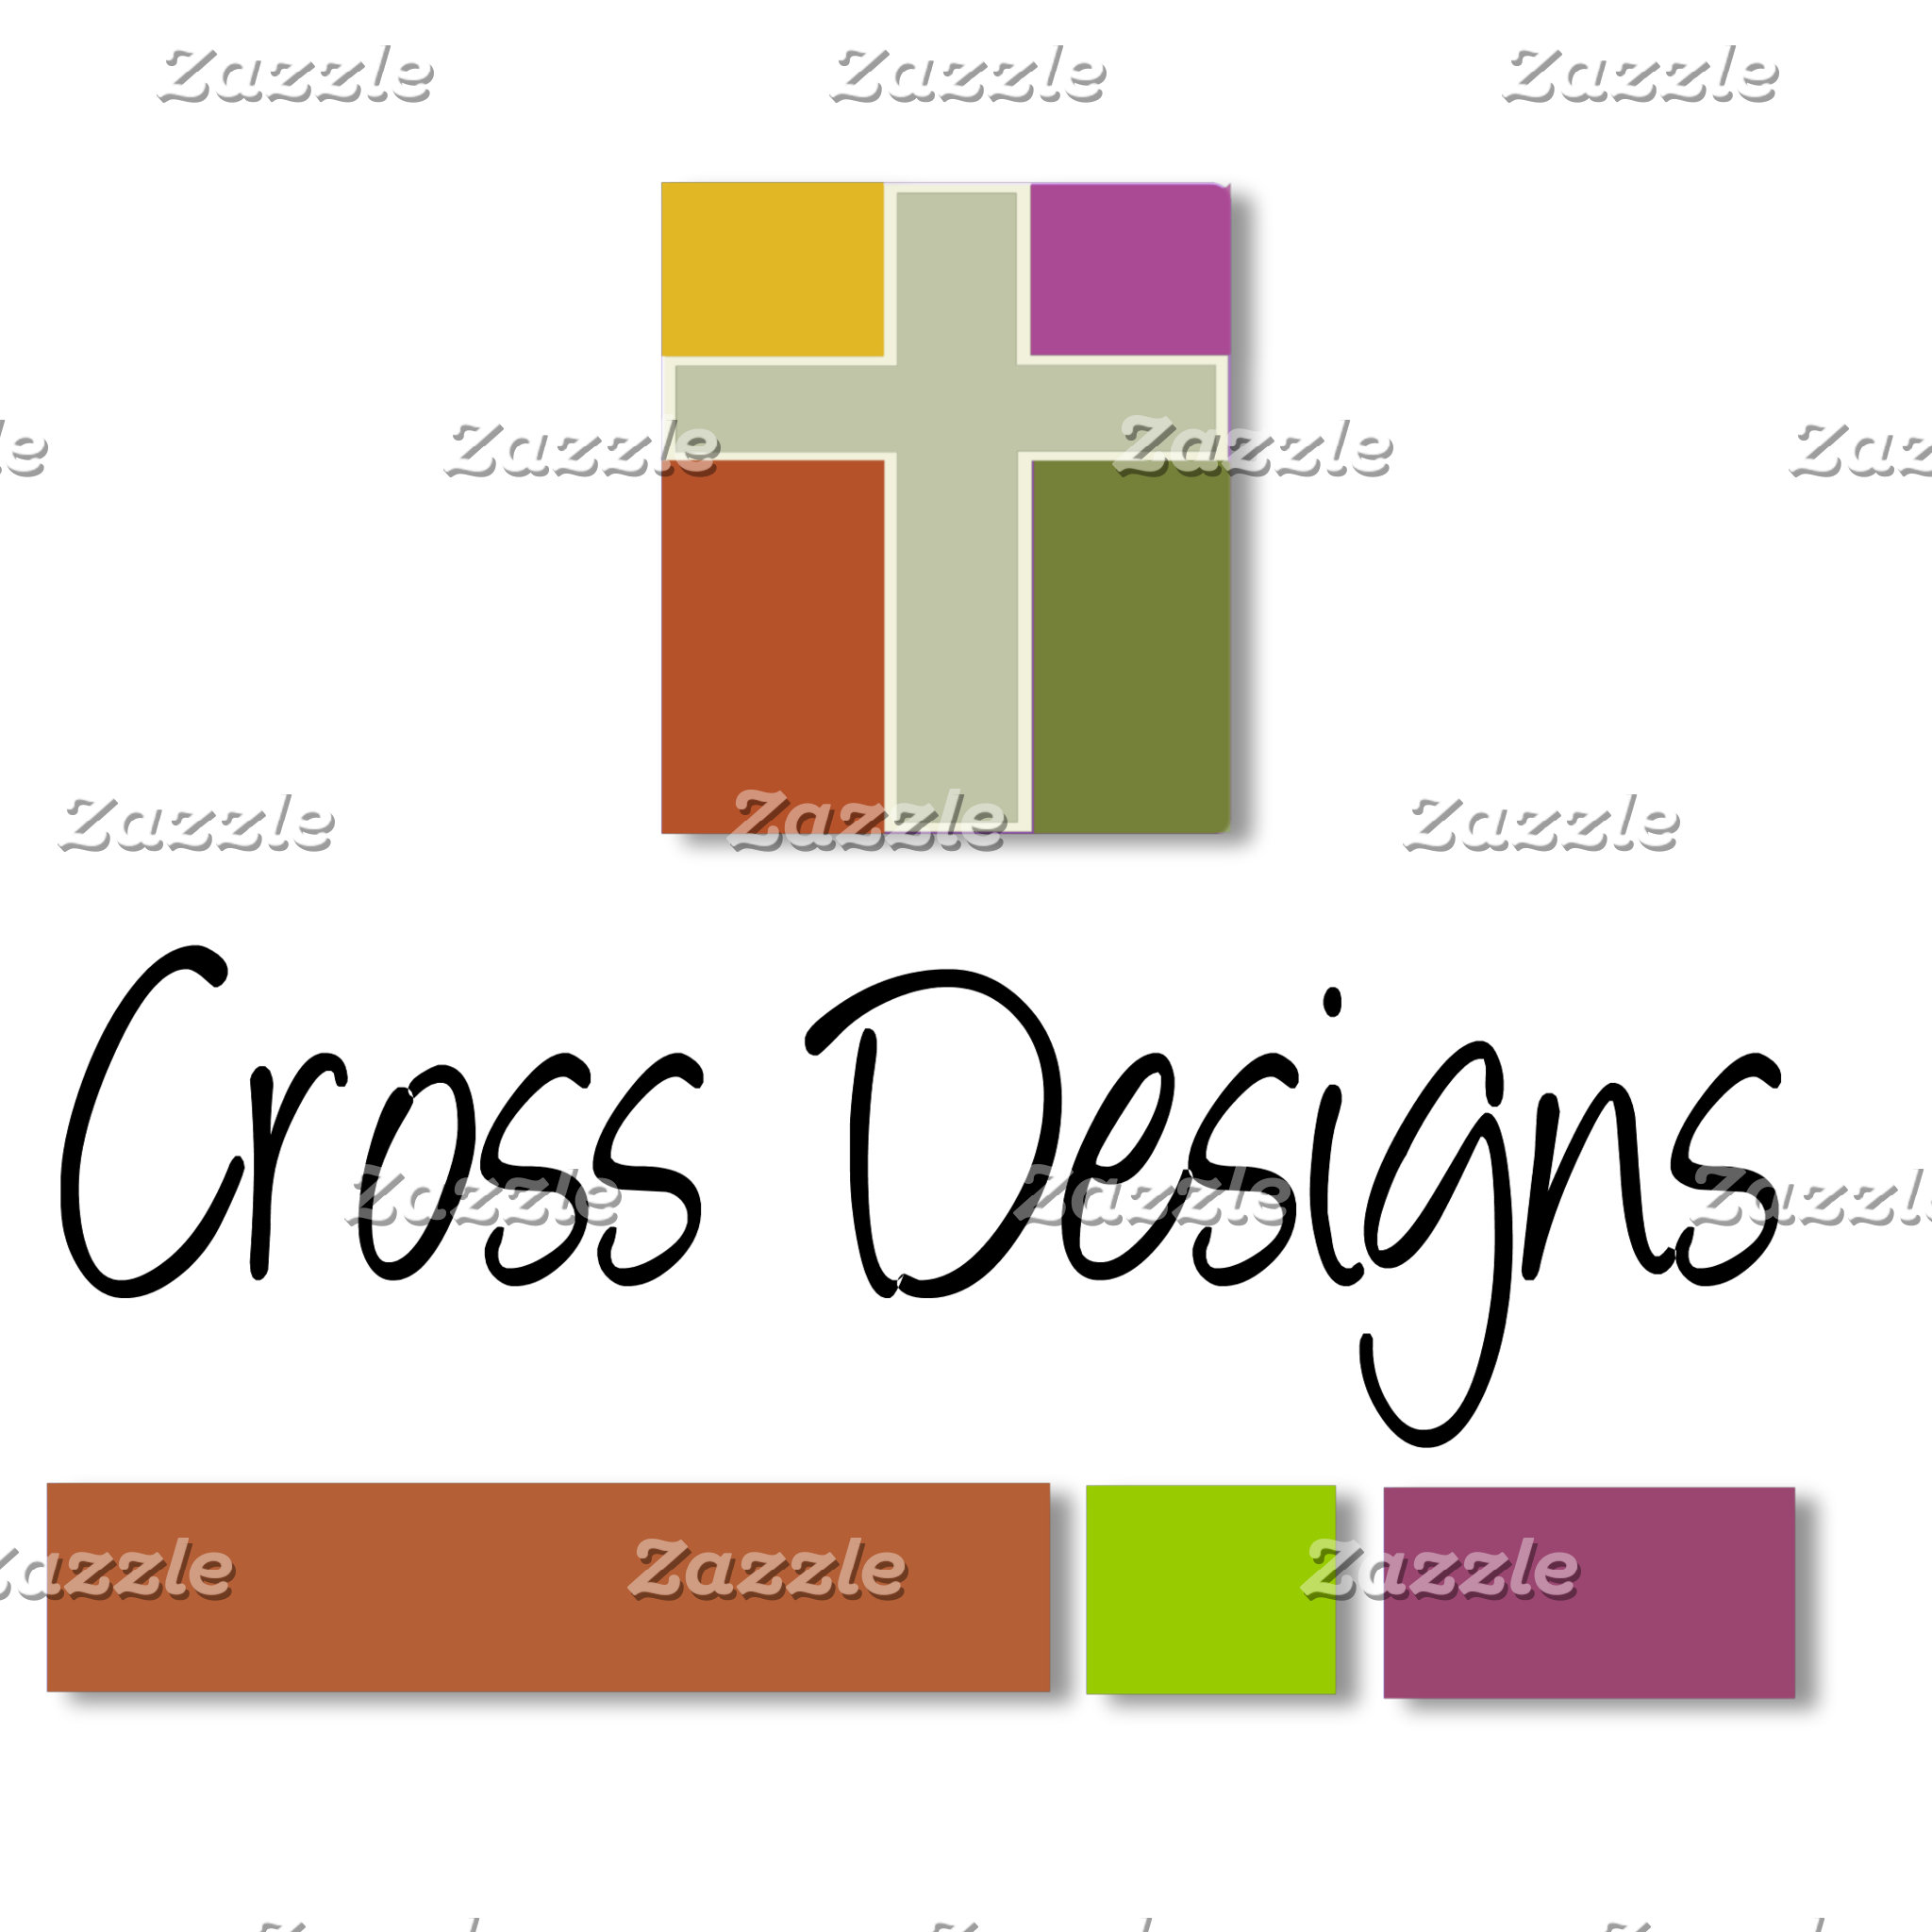 CHRISTIAN CROSS DESIGNS